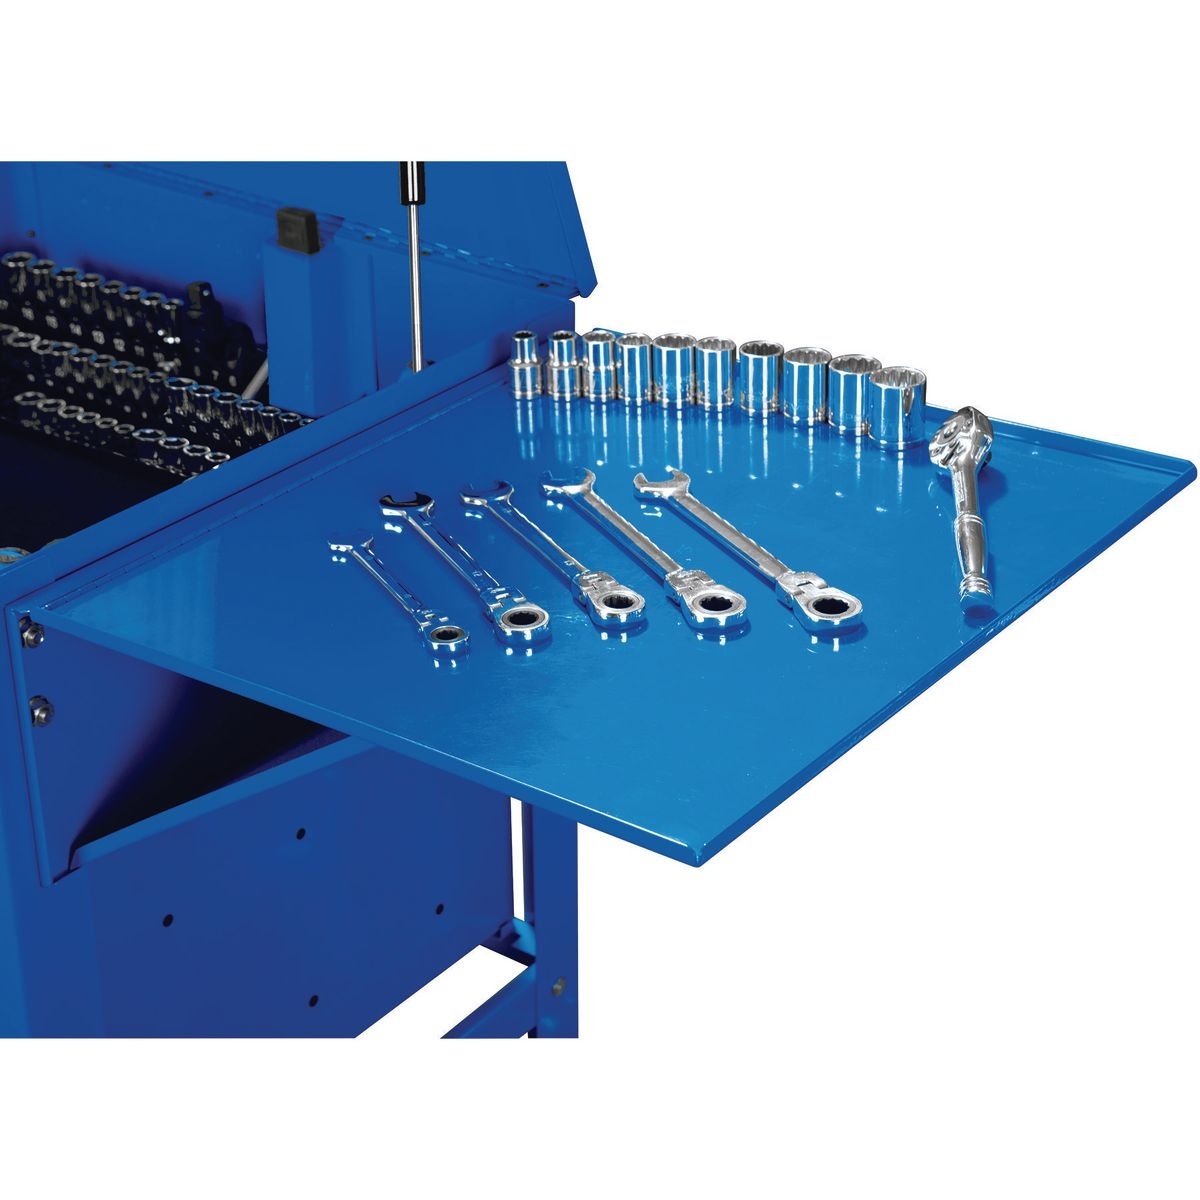 U.S. GENERAL Folding Side Tray for Blue Tool Cart - Item 64641